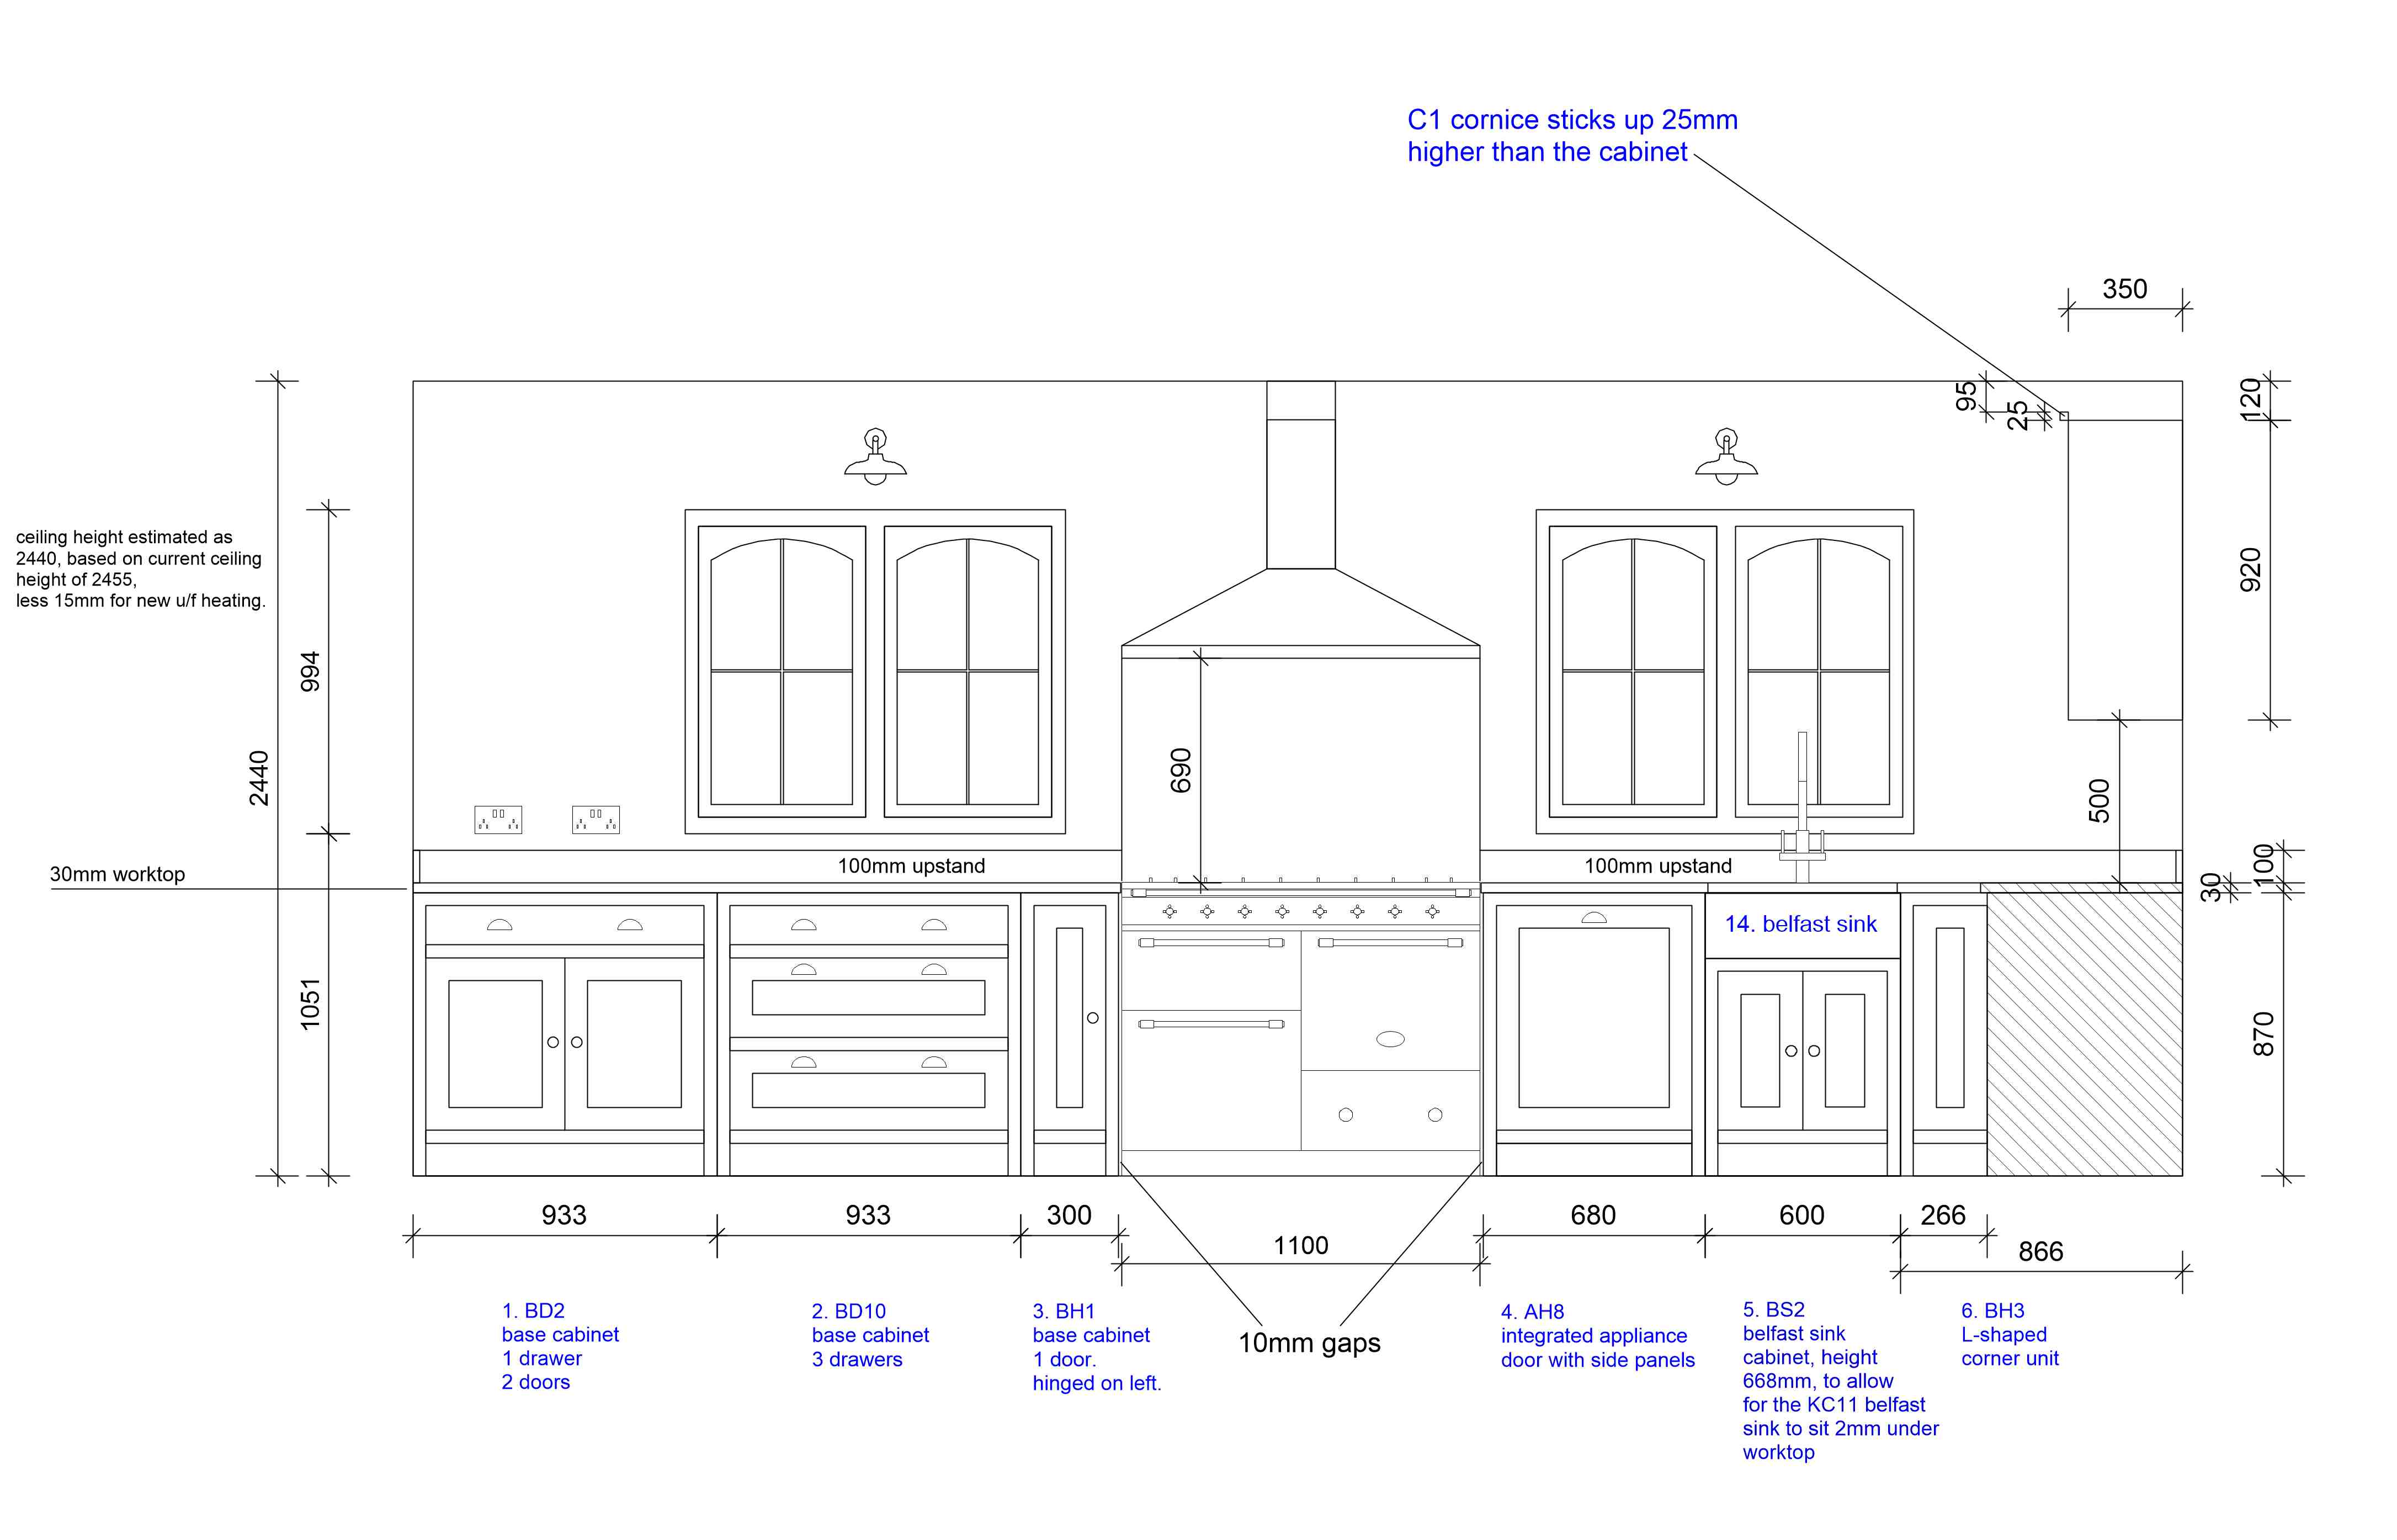 Kitchen Drawings Kent Griffiths Design